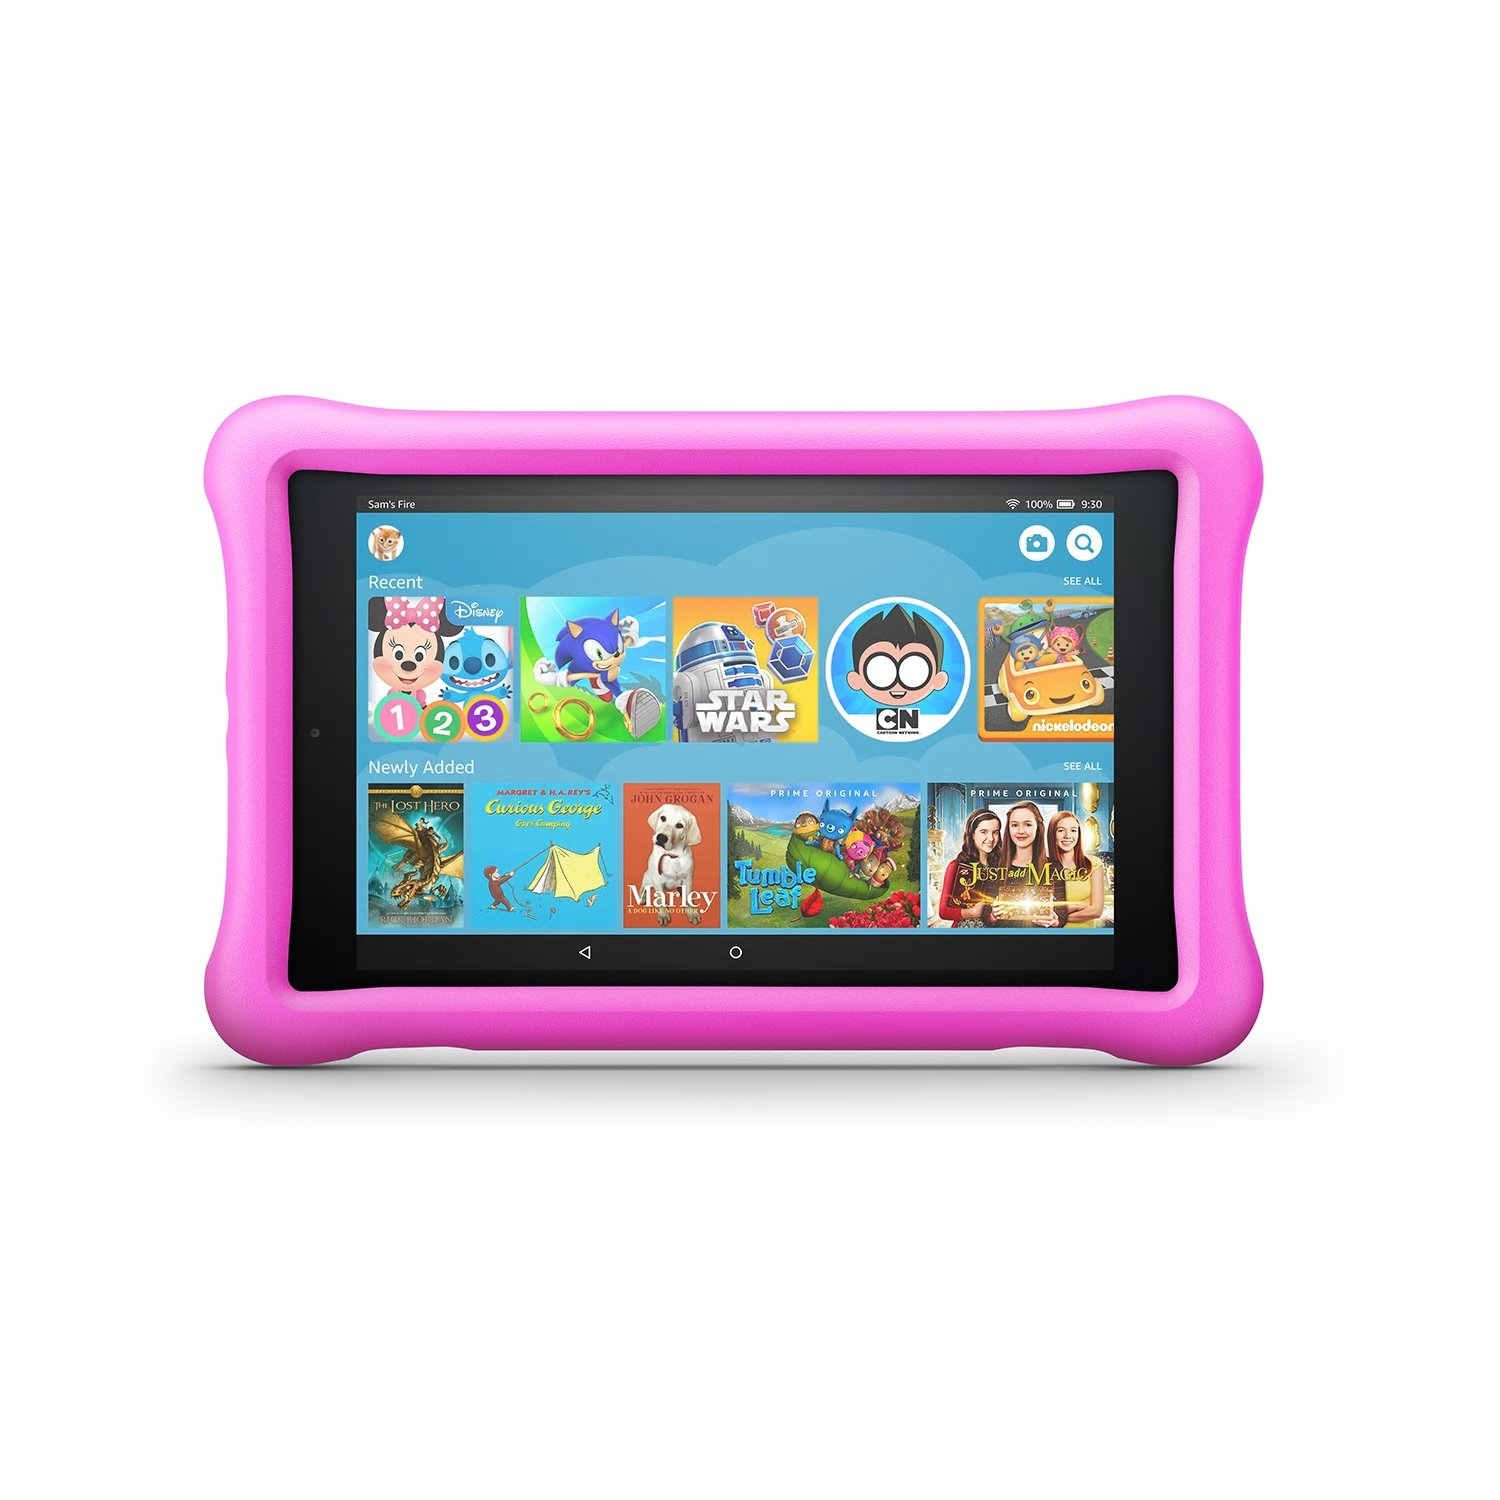 Amazon Fire HD 8 Kids Edition Tablet, 8-inch Display & 32 GB Memory